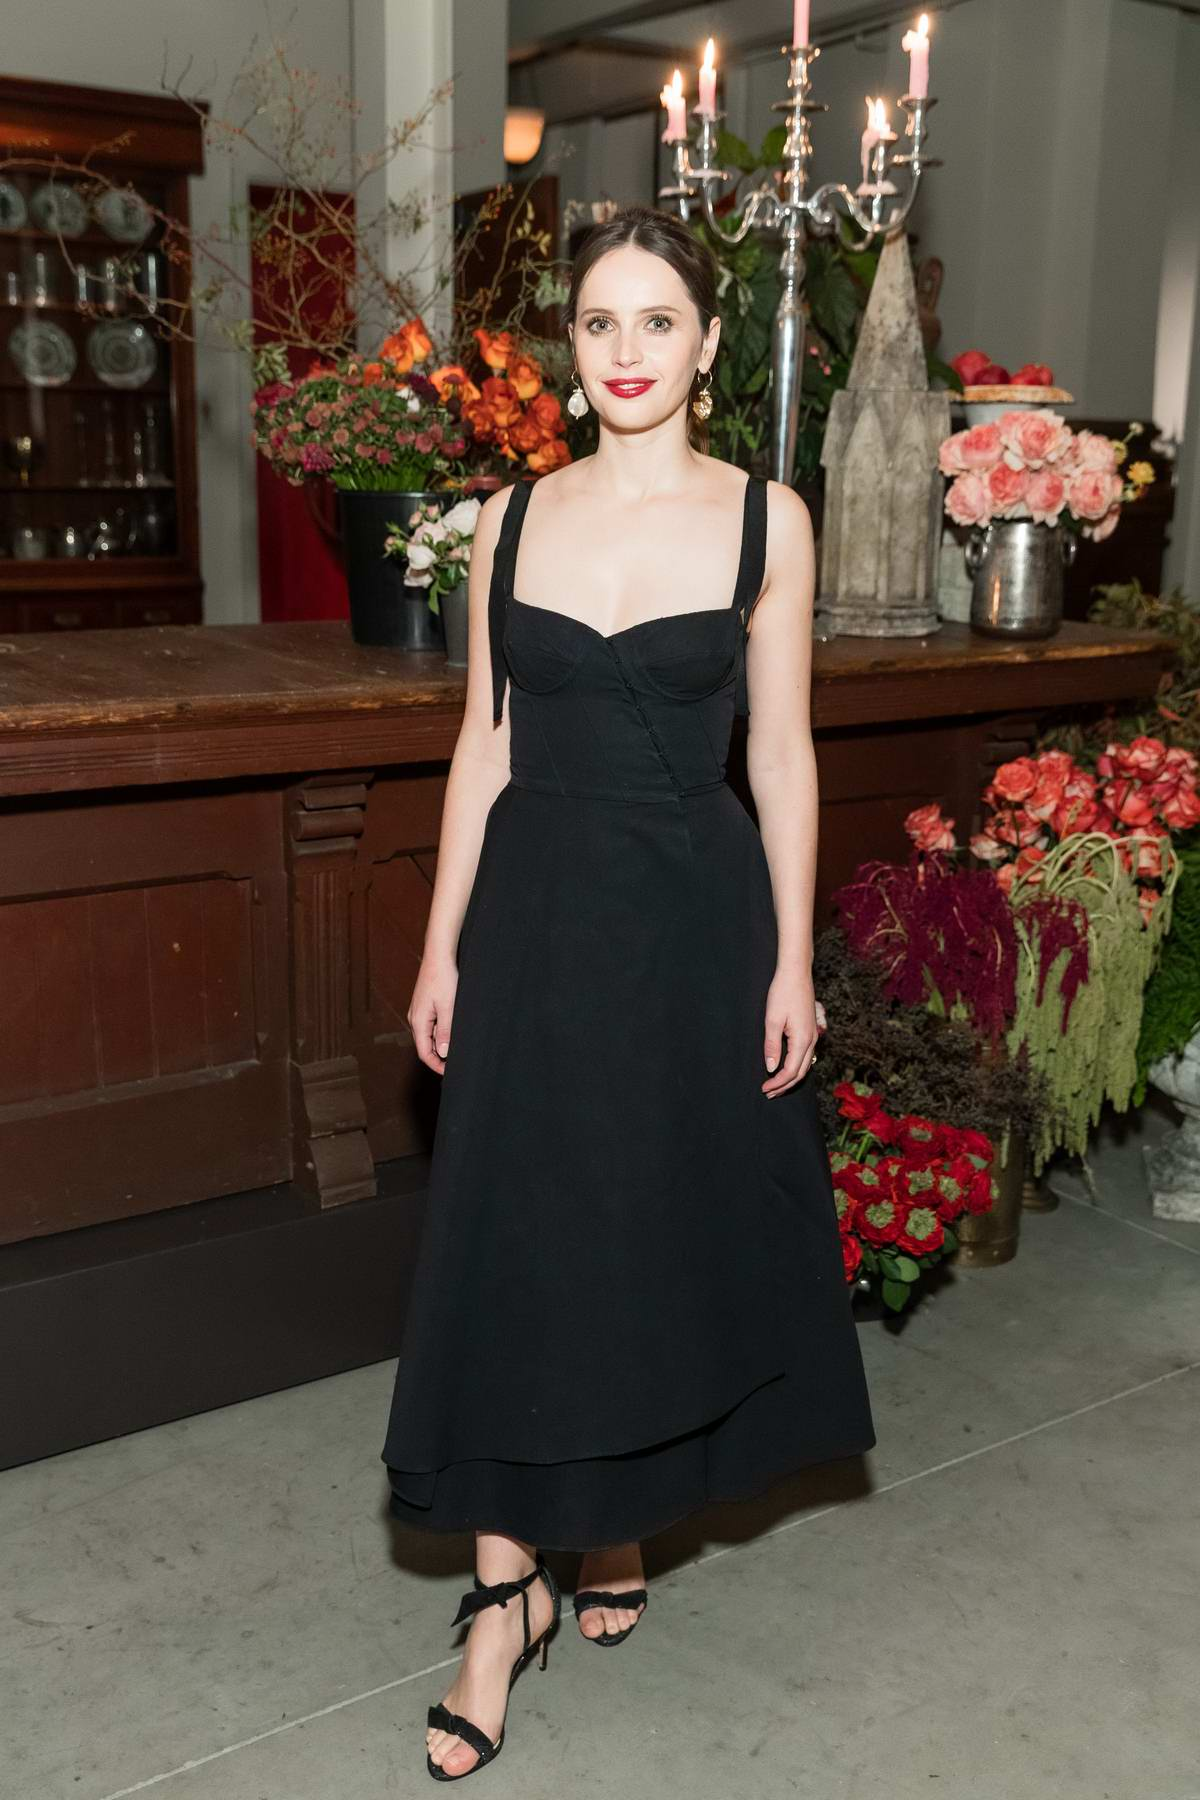 Felicity Jones attends screening of her new movie 'On The Basis Of Sex' in San Francisco, California